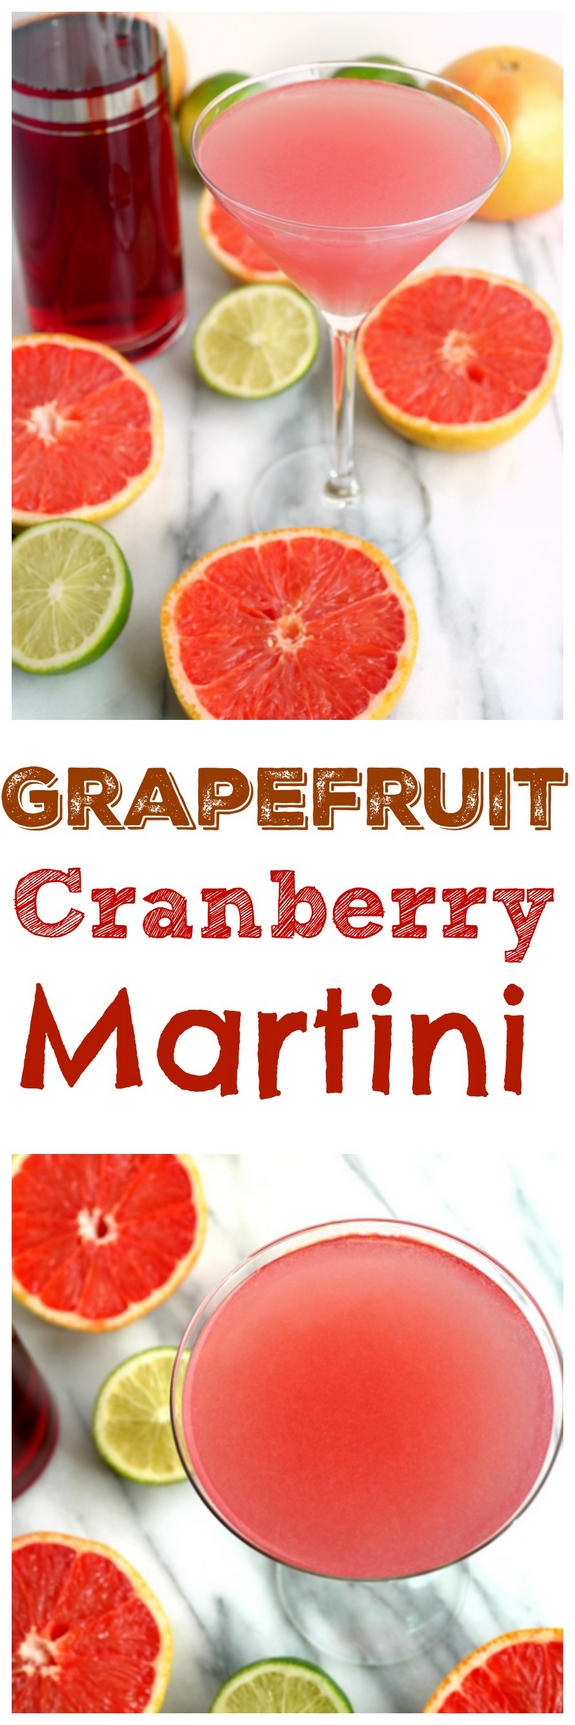 Refreshingly tart and delicious, this Grapefruit Cranberry Martini will have you in fun mode in no time. A few sips of this delightful cocktail and you will forget all about winter from NoblePig.com. via @cmpollak1